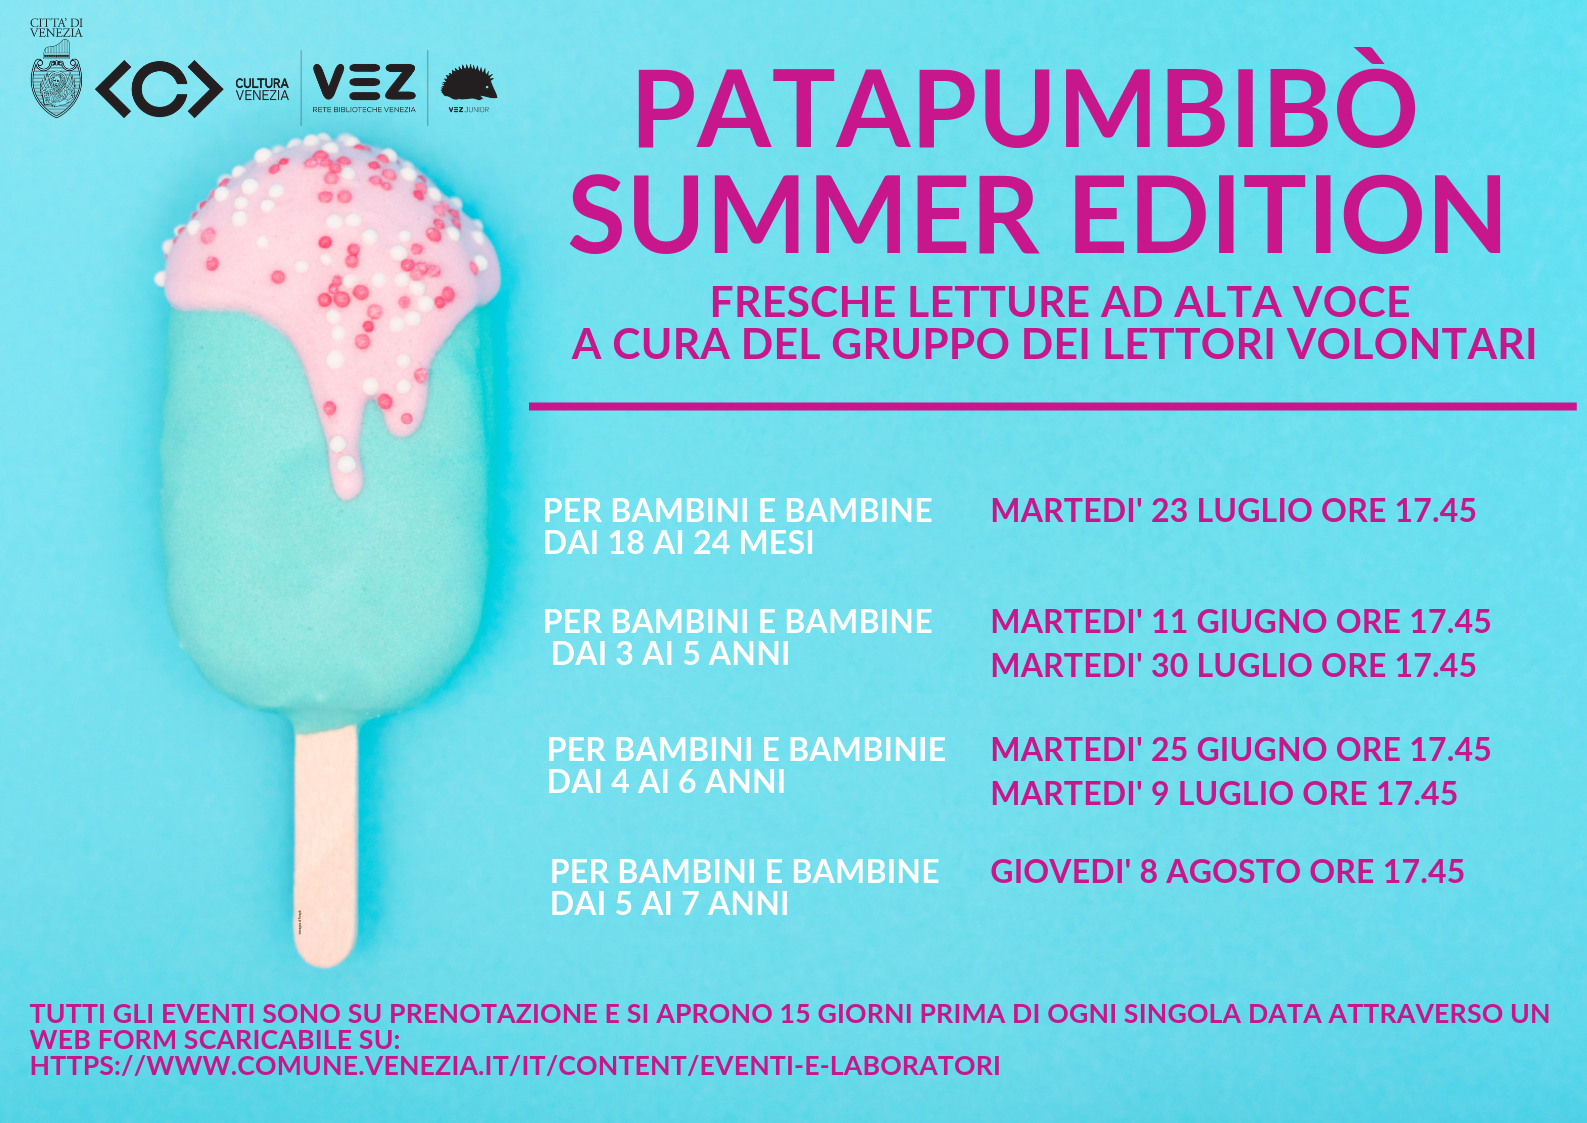 Patapumbibò Summer Edition